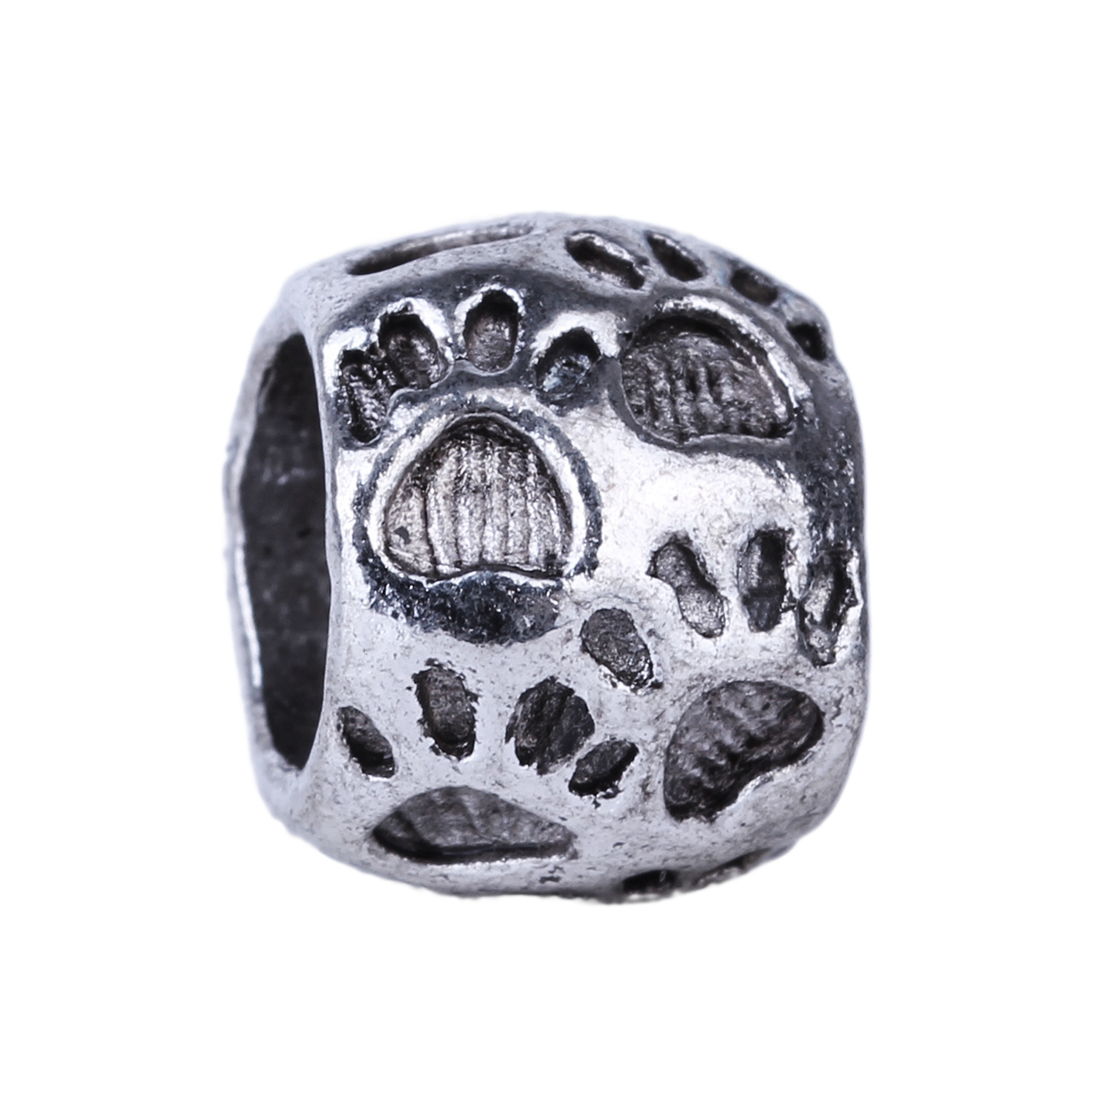 10pcs/lot Wholesale European Charm Silver Dog Paw Print Bead DIY Fashion Style Alloy Beads Fit Pandora BIAGI Bracelets & Bangles(China (Mainland))